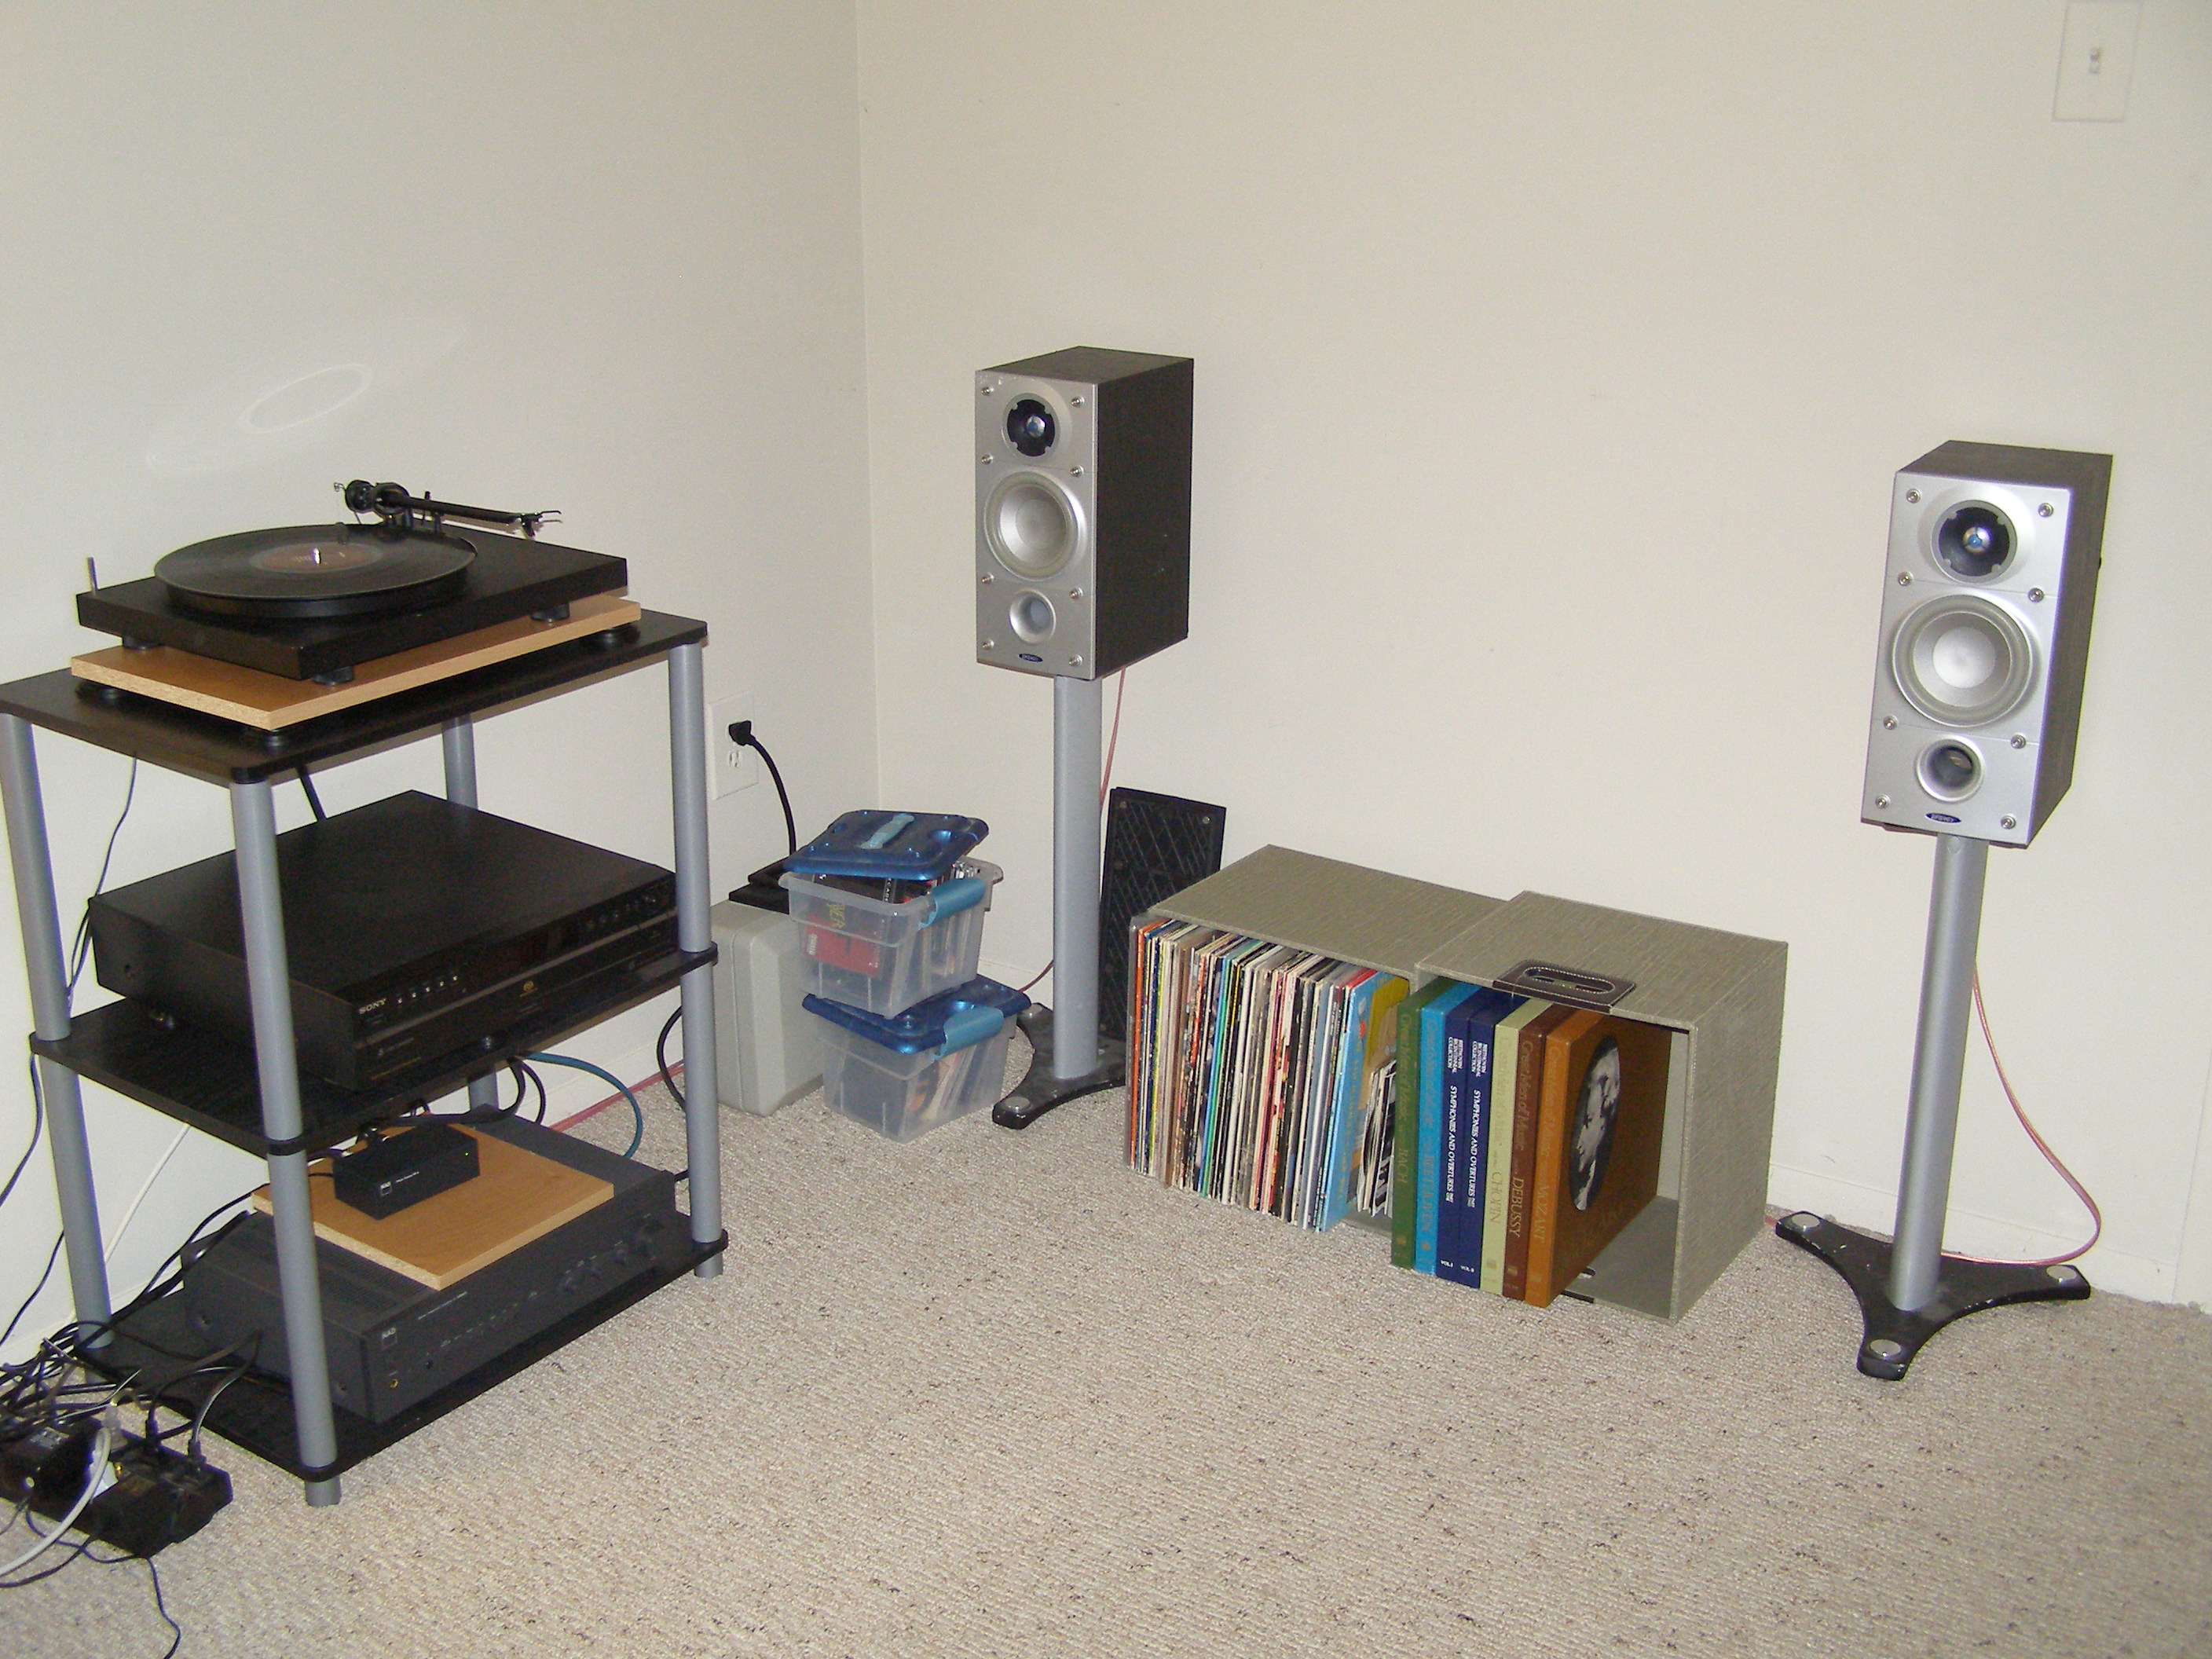 An image of how my hi-fi setup currently looks